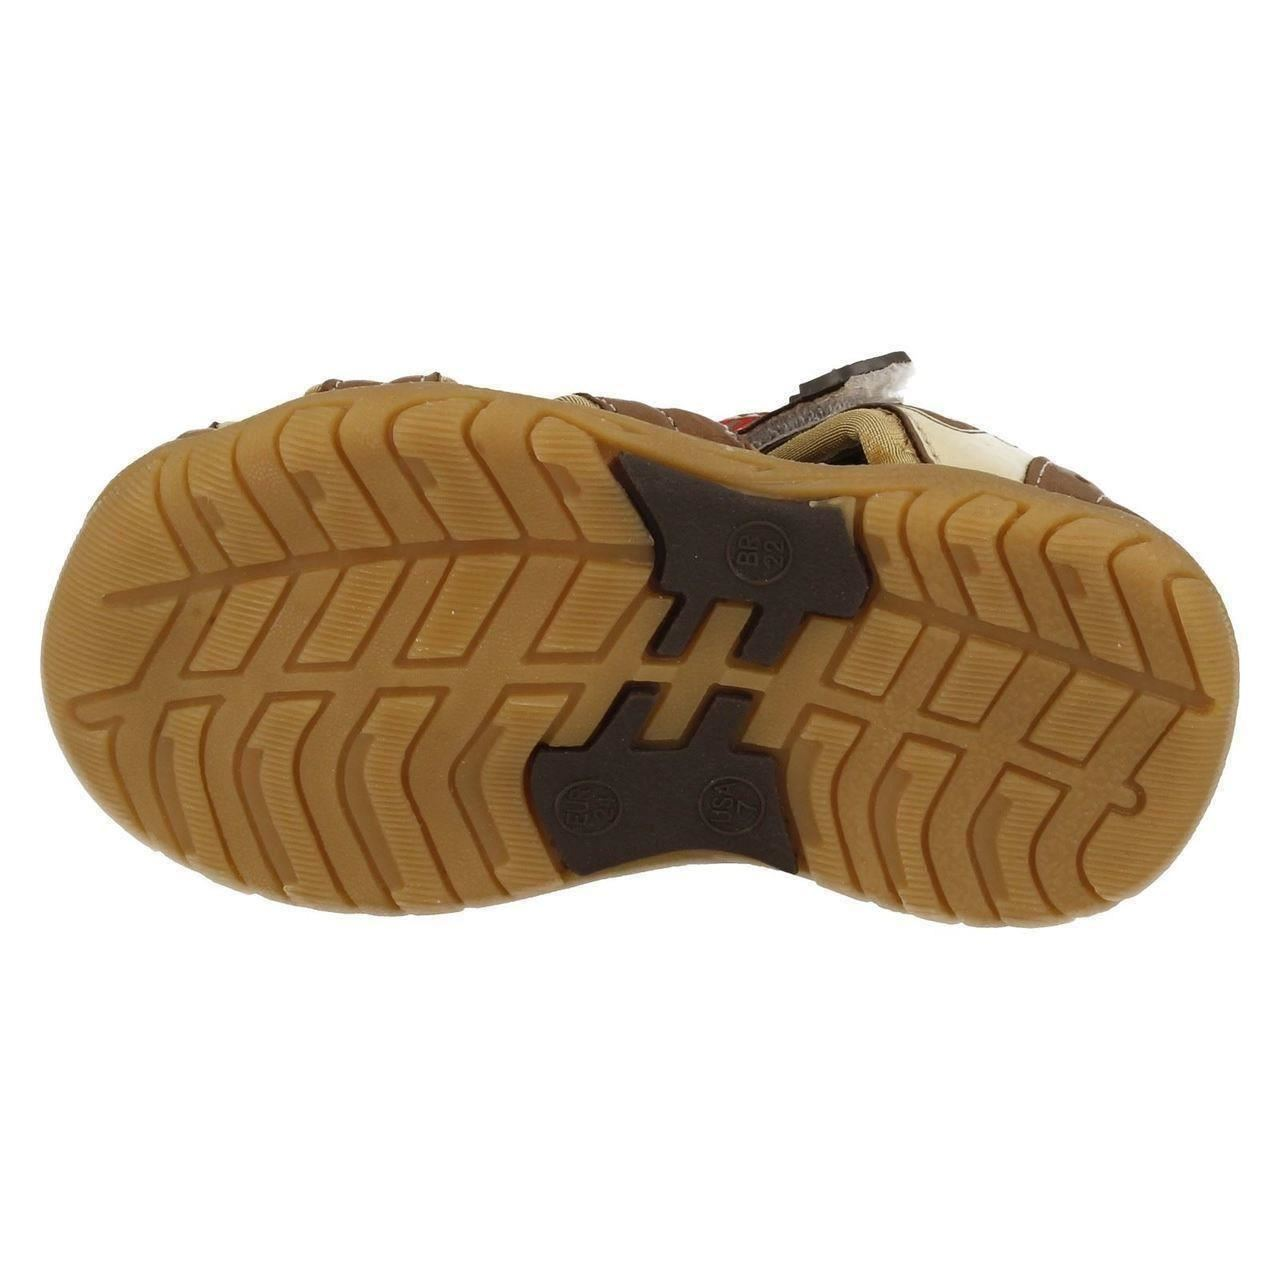 Closed Toe Casual Sandals Boys JCDees